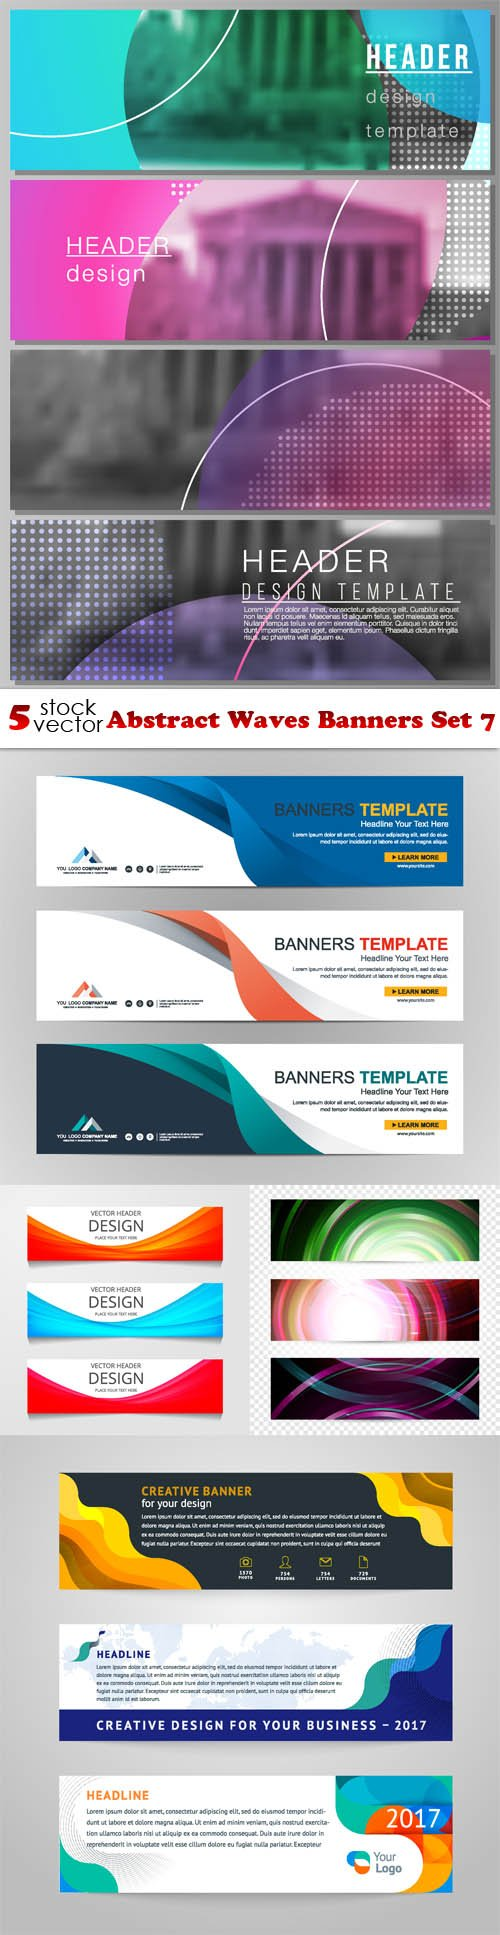 Vectors - Abstract Waves Banners Set 7